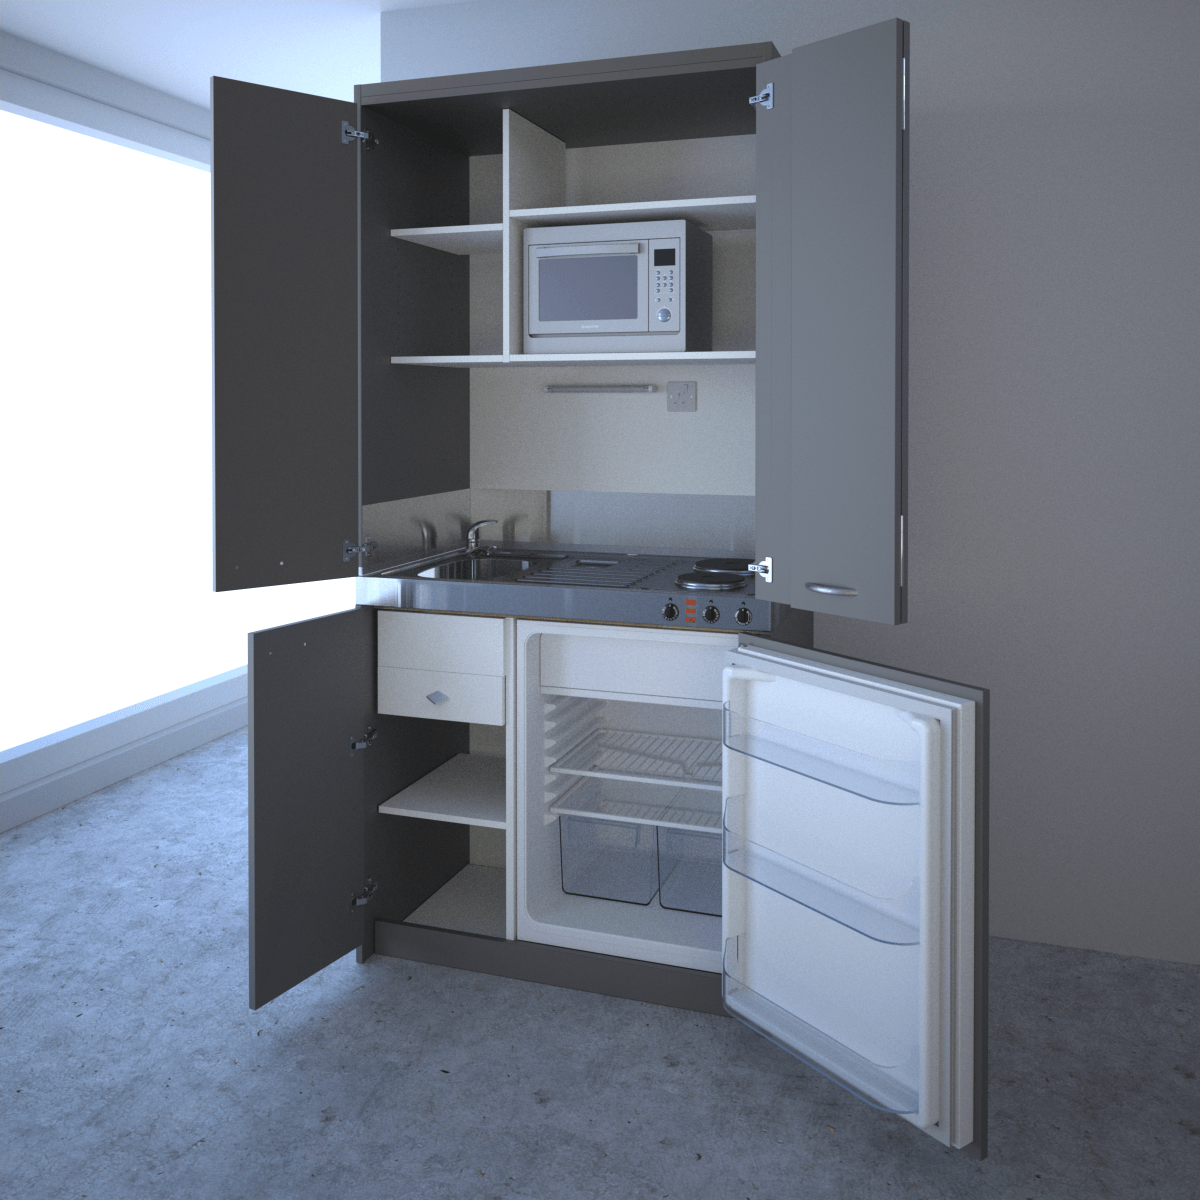 Mini Kitchenette: 1m Concealed Hideaway Kitchen With Hob